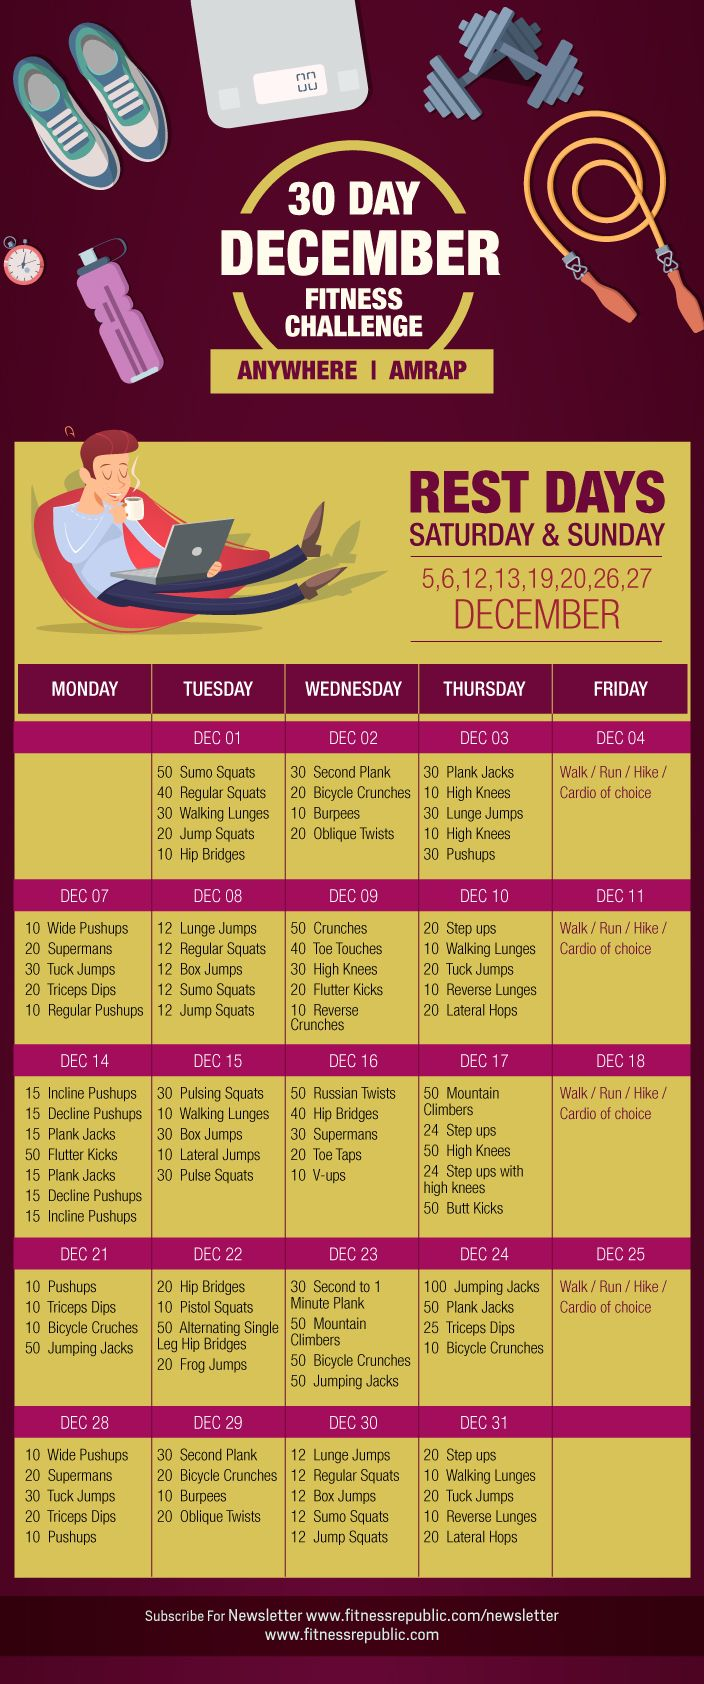 December is a tough month to work out due to dropping temperatures and the holiday season, so this challenge is meant to spark exercise excitement and keep you fit.